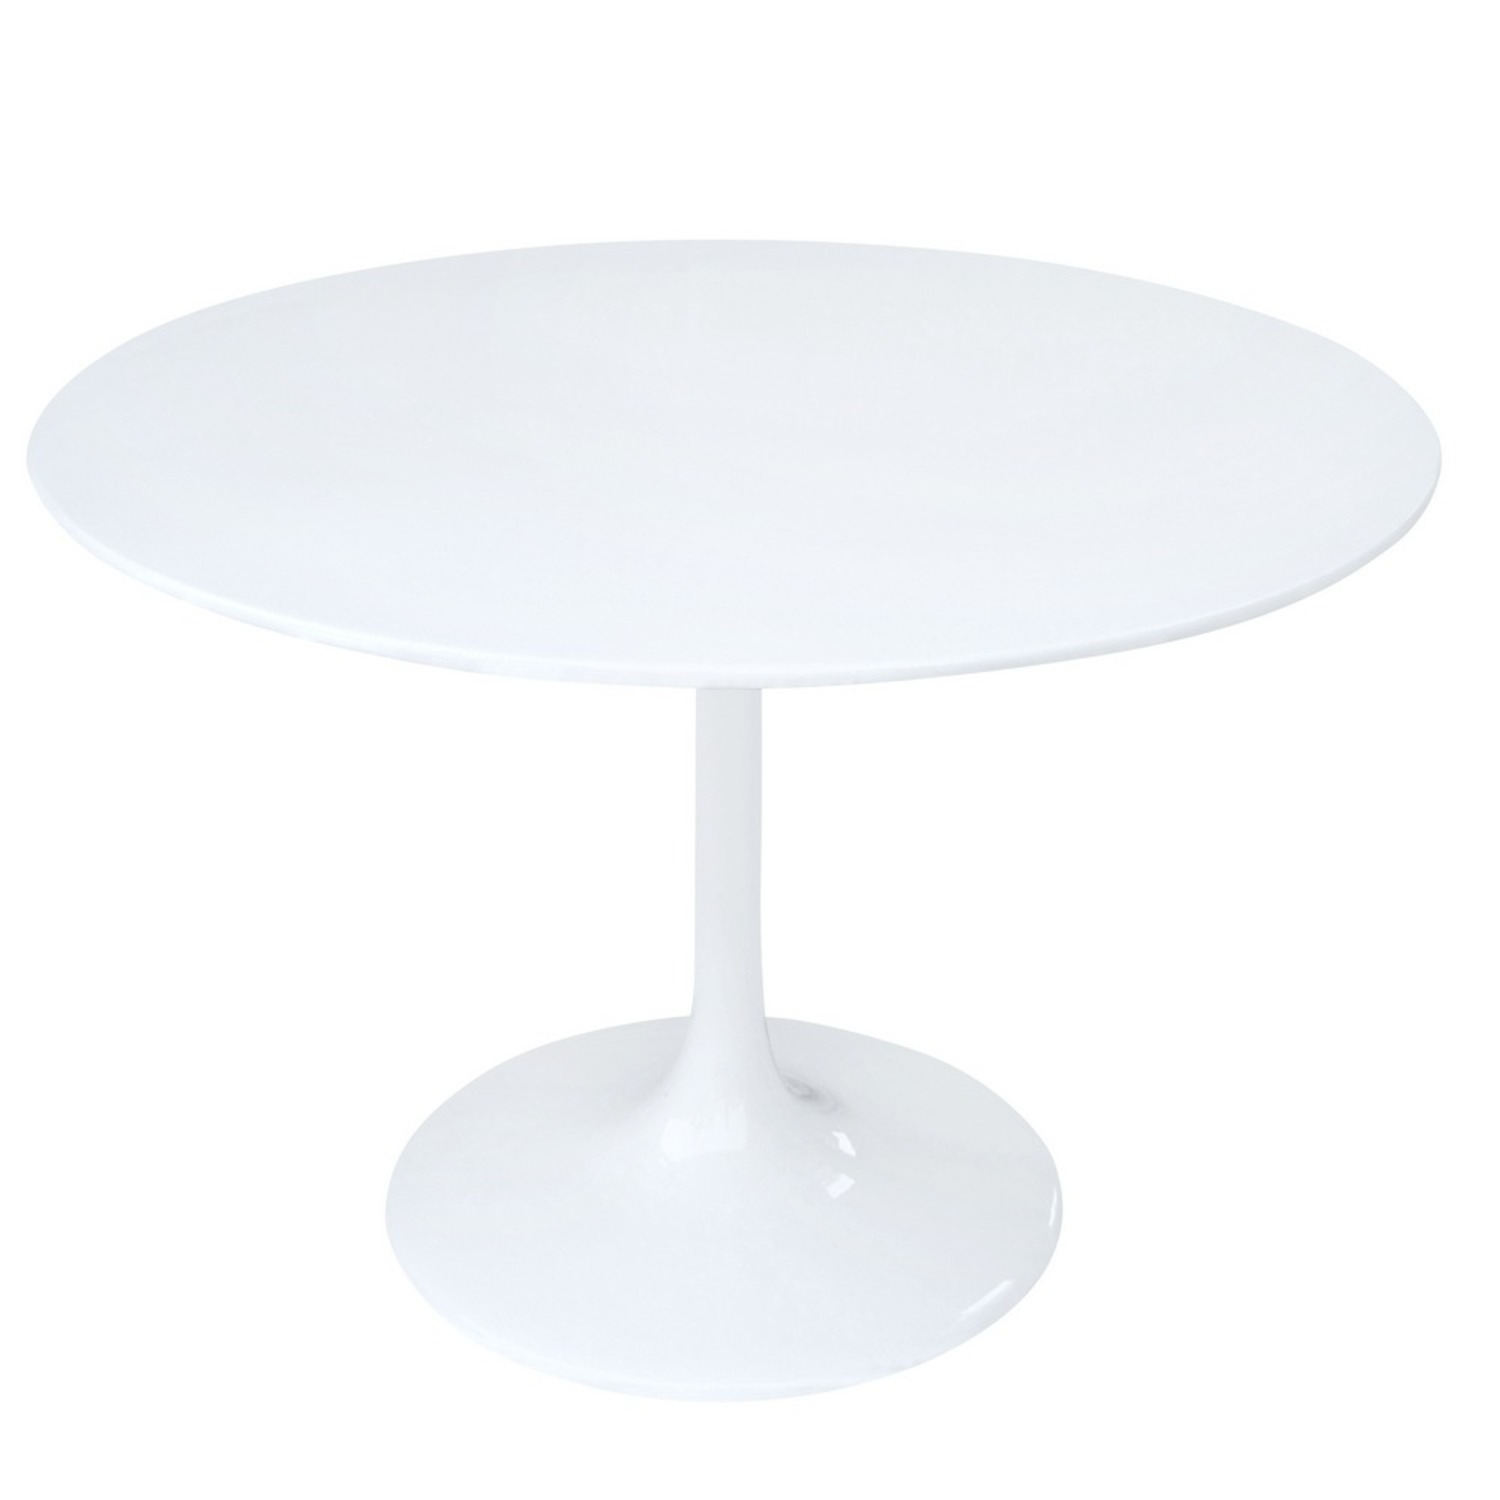 36-Inch Dining Table Molded In White Fiberglass - image-1